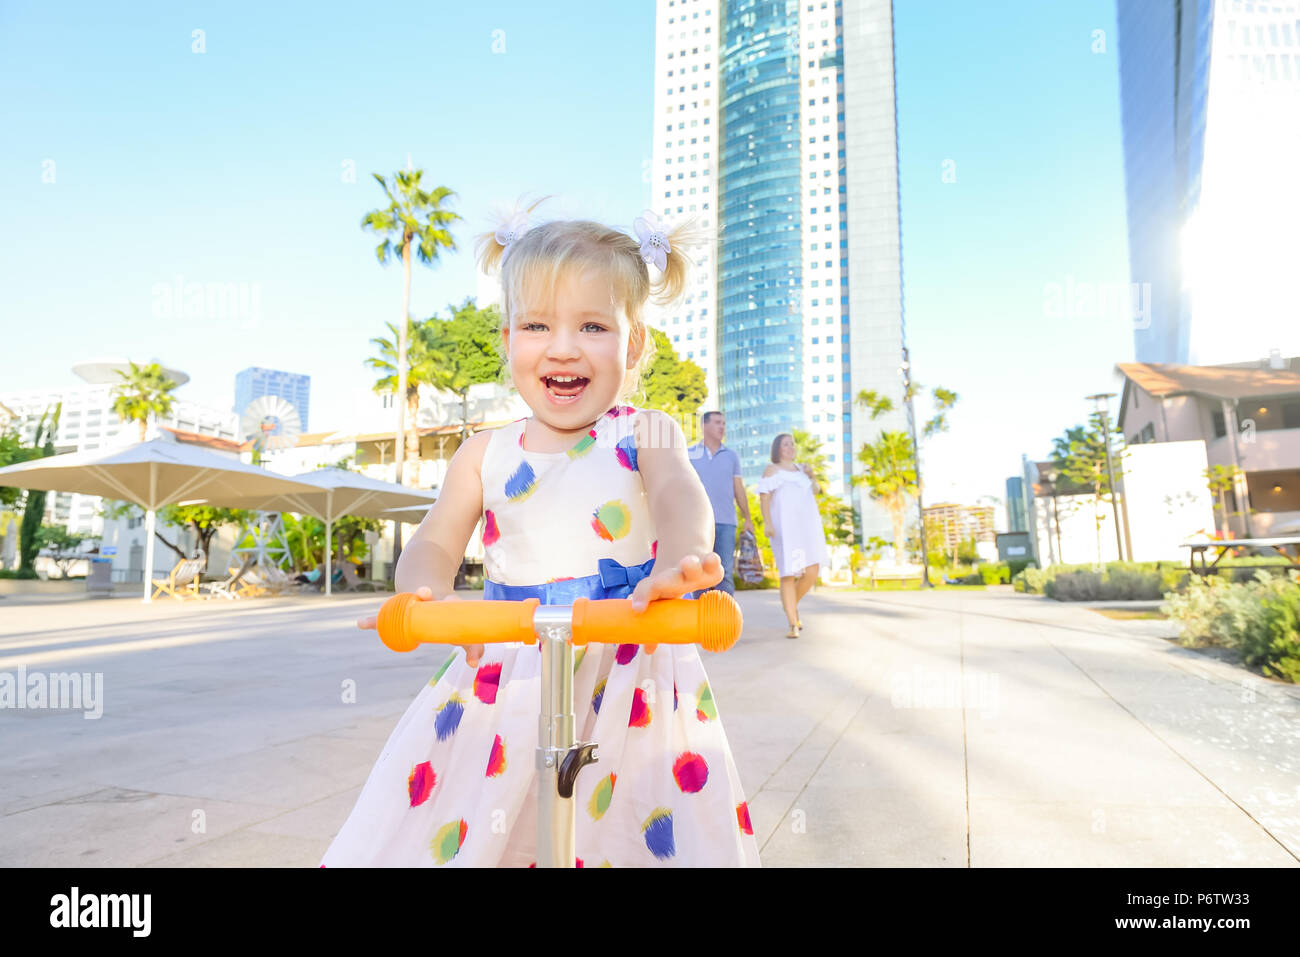 Emotional cute little blondy toddler girl in dress riding scooter in the city park recreation area with modern skyscraper buildings on the background. - Stock Image